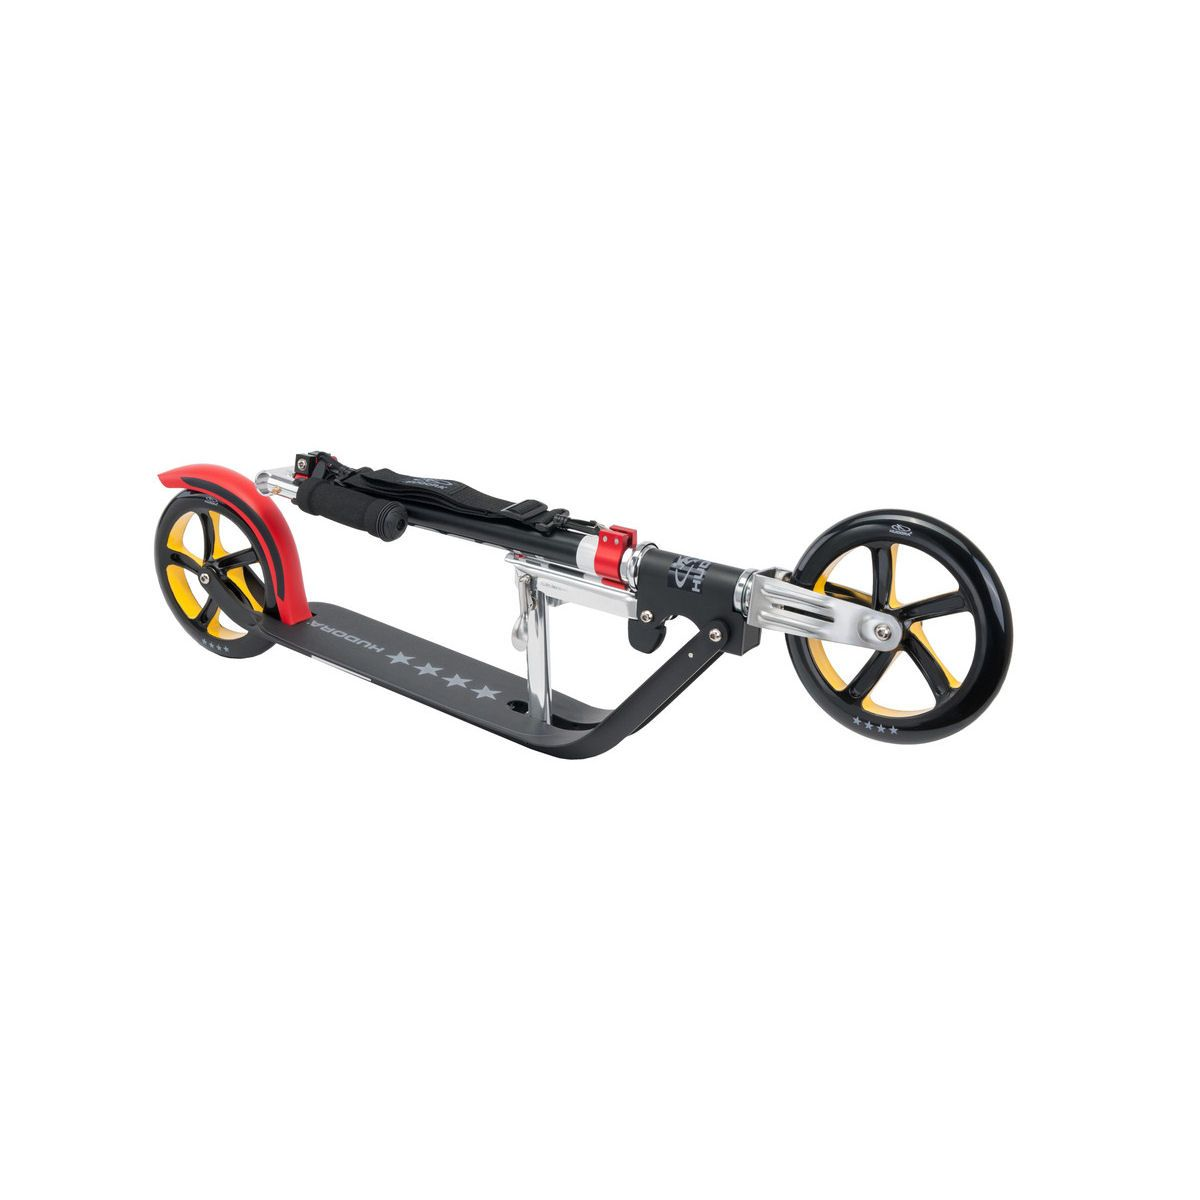 hudora big wheel 205 roller rx pro 205 em scooter schwarz rot gold ebay. Black Bedroom Furniture Sets. Home Design Ideas